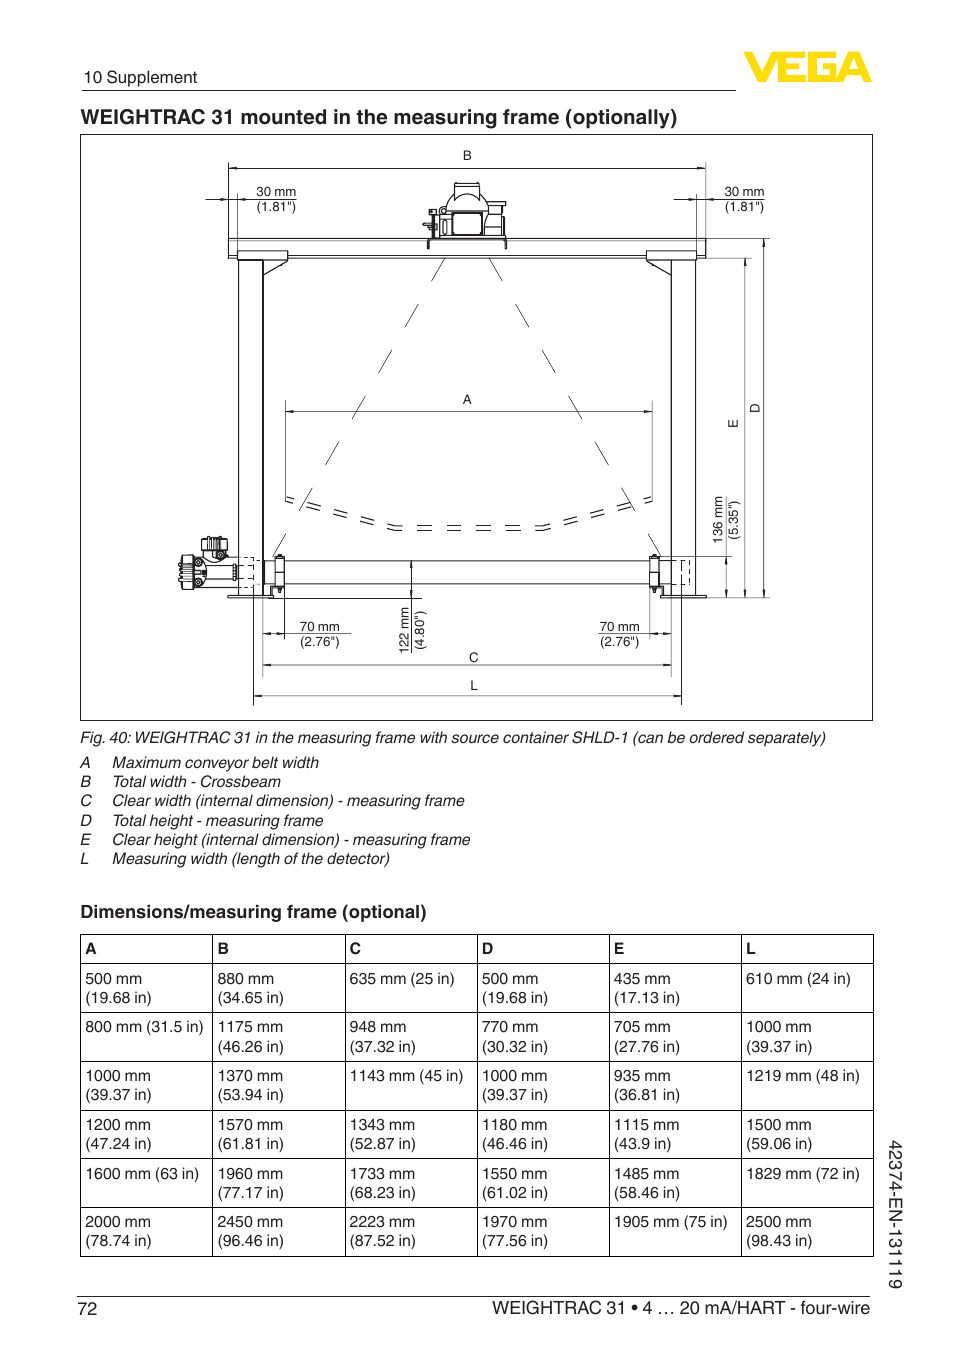 vega weightrac 31 4 20 ma_hart four wire user manual page 72 flowserve wiring diagram vega weightrac 31 4 20 ma_hart four wire user manual page 72